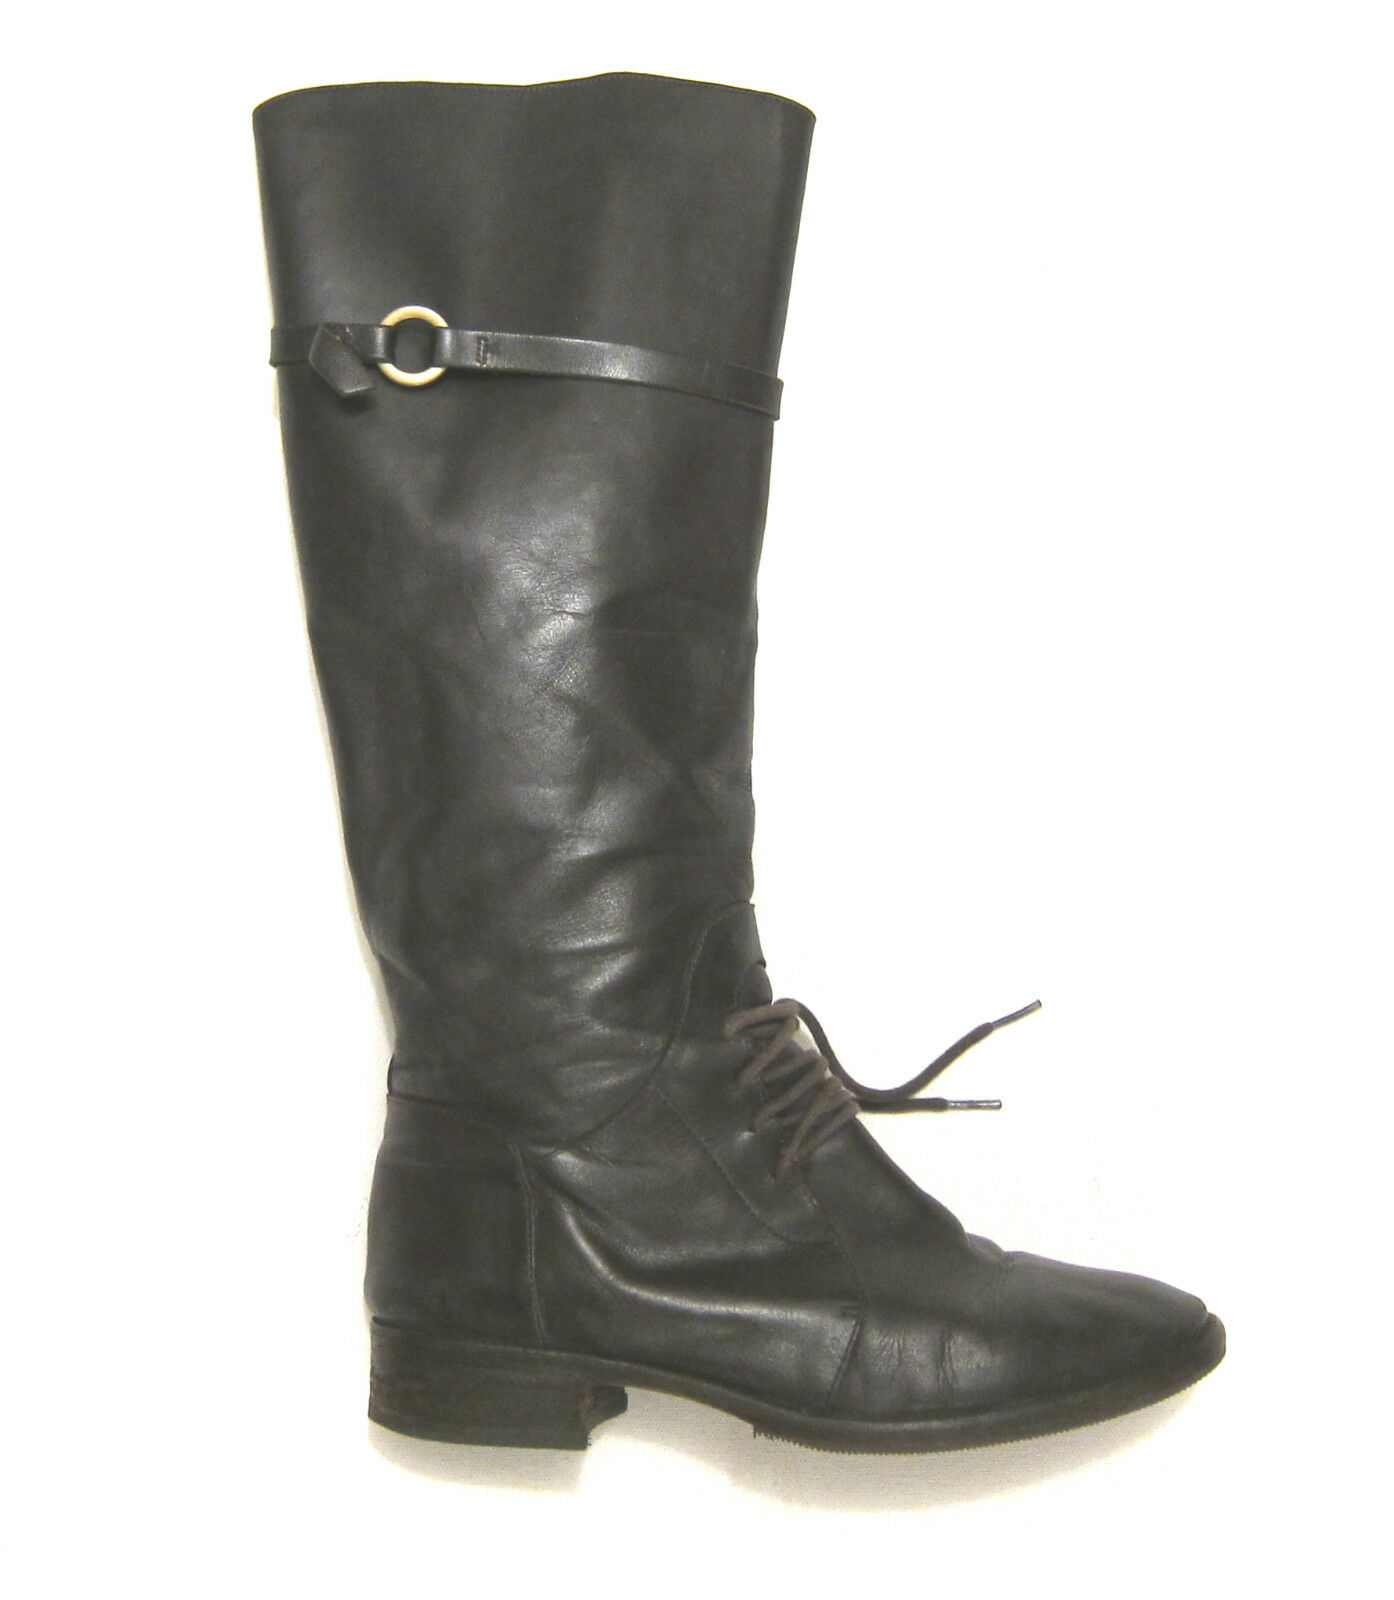 485 Joie Martha Riding bottes Knee High Lace & Strap in marron leather sz 9 39